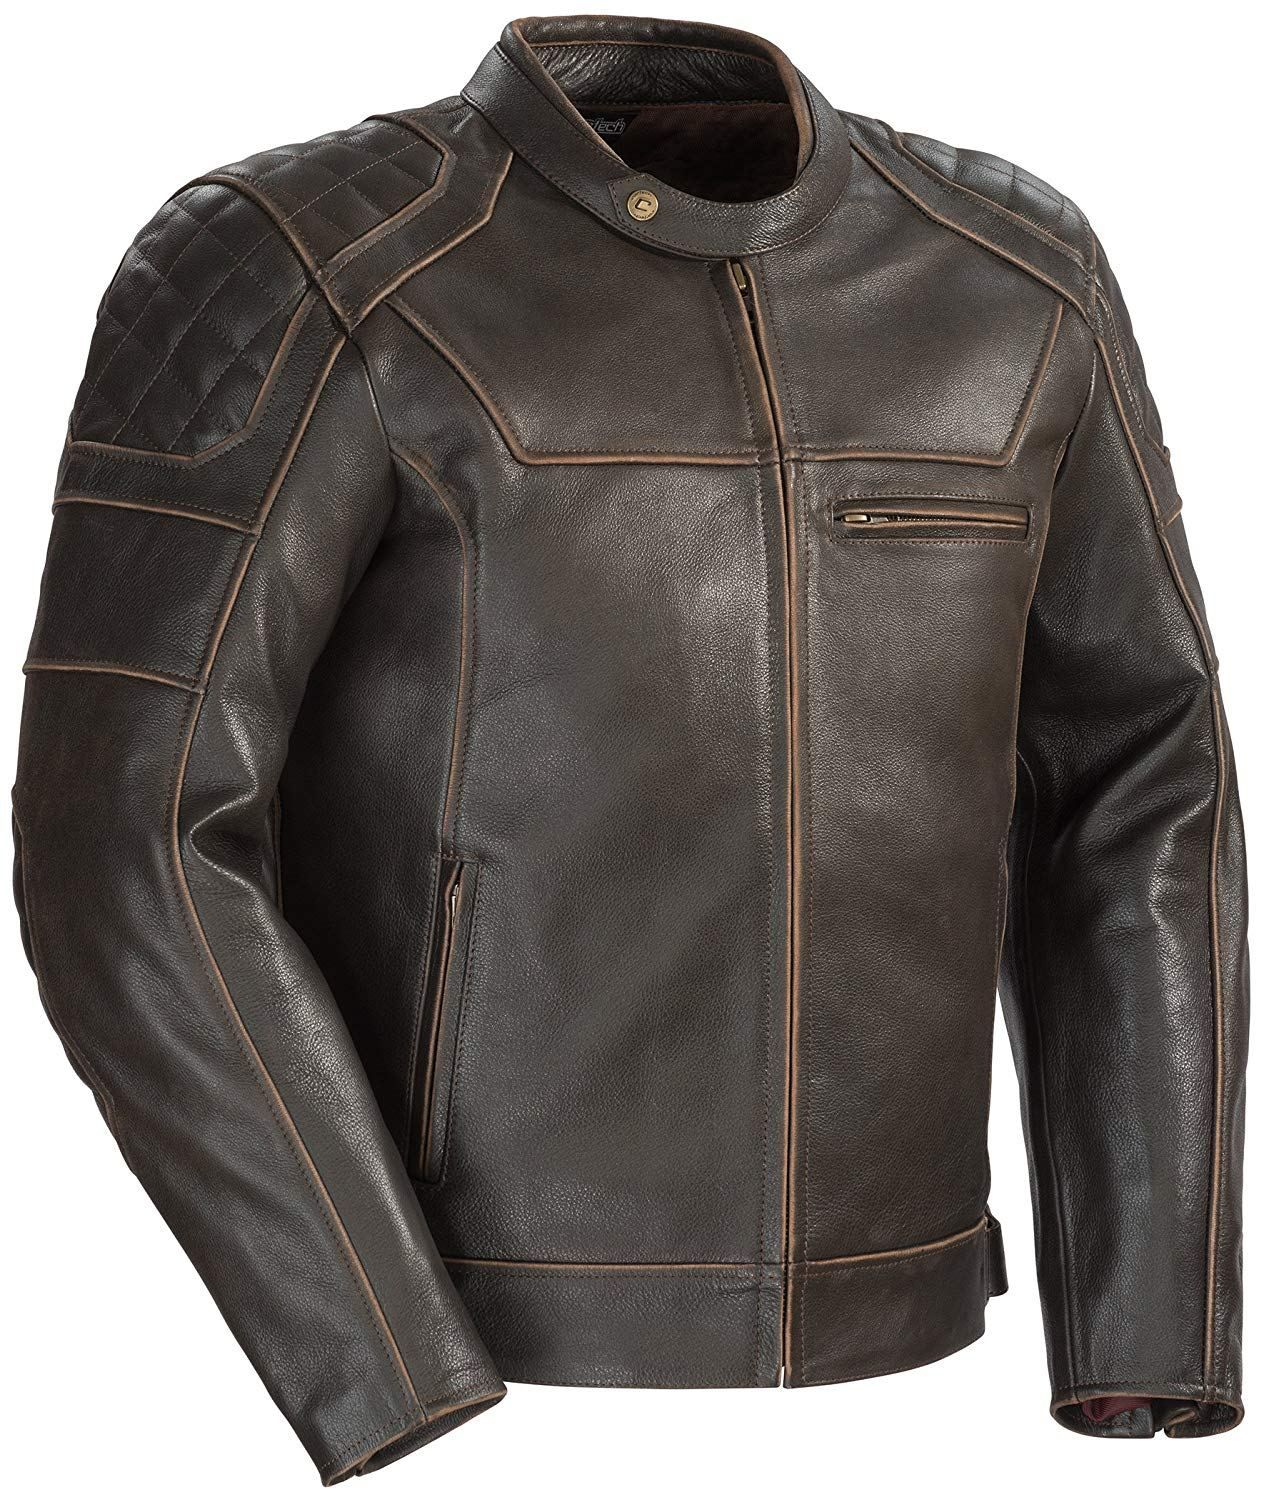 Cortech Dino Leather Motorcycle Jacket Mens Fashion Cat